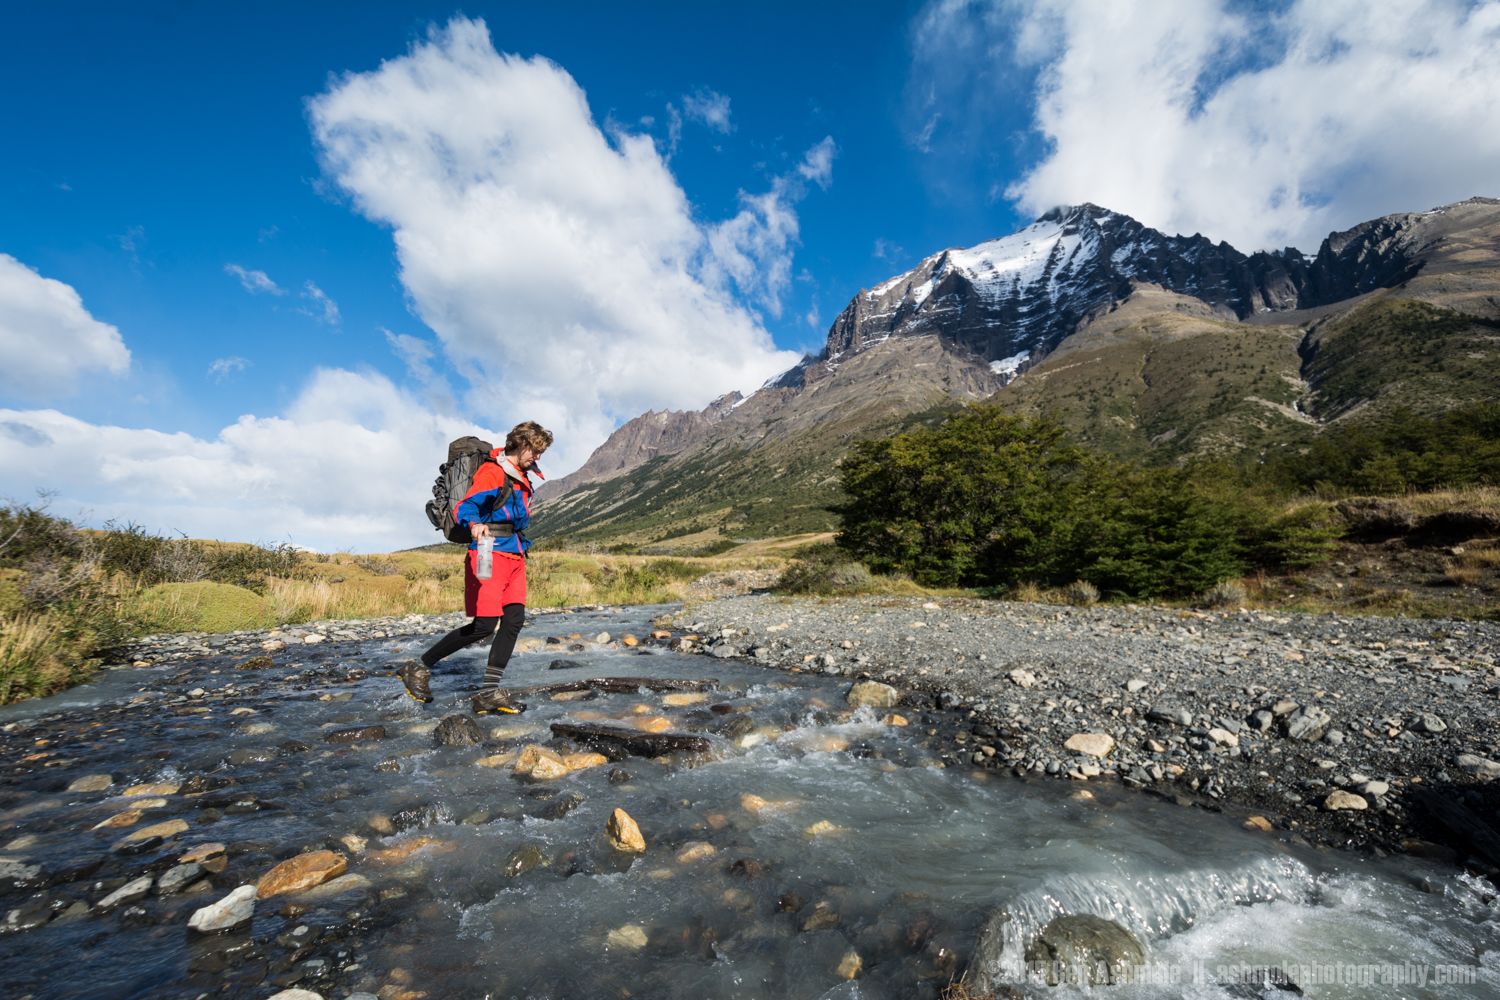 Crossing The River, Torres Del Paine, Patagonia, Chile